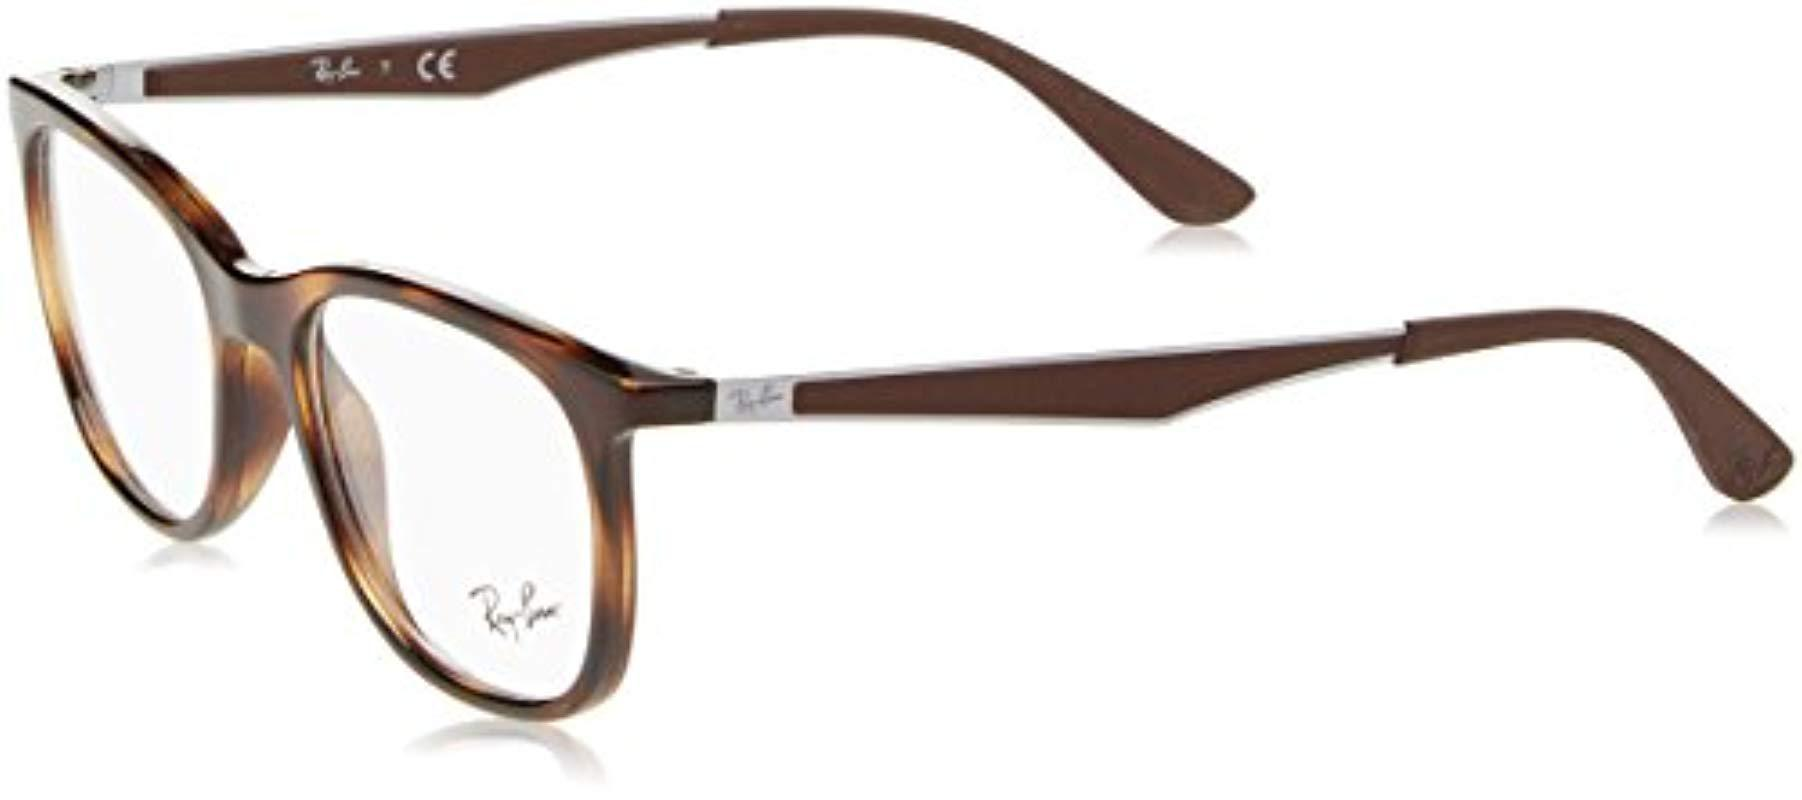 a62dfe7c1a2 Ray-Ban Rx7078 Glasses In Shiny Black Rx7078 2000 53 in Brown for ...